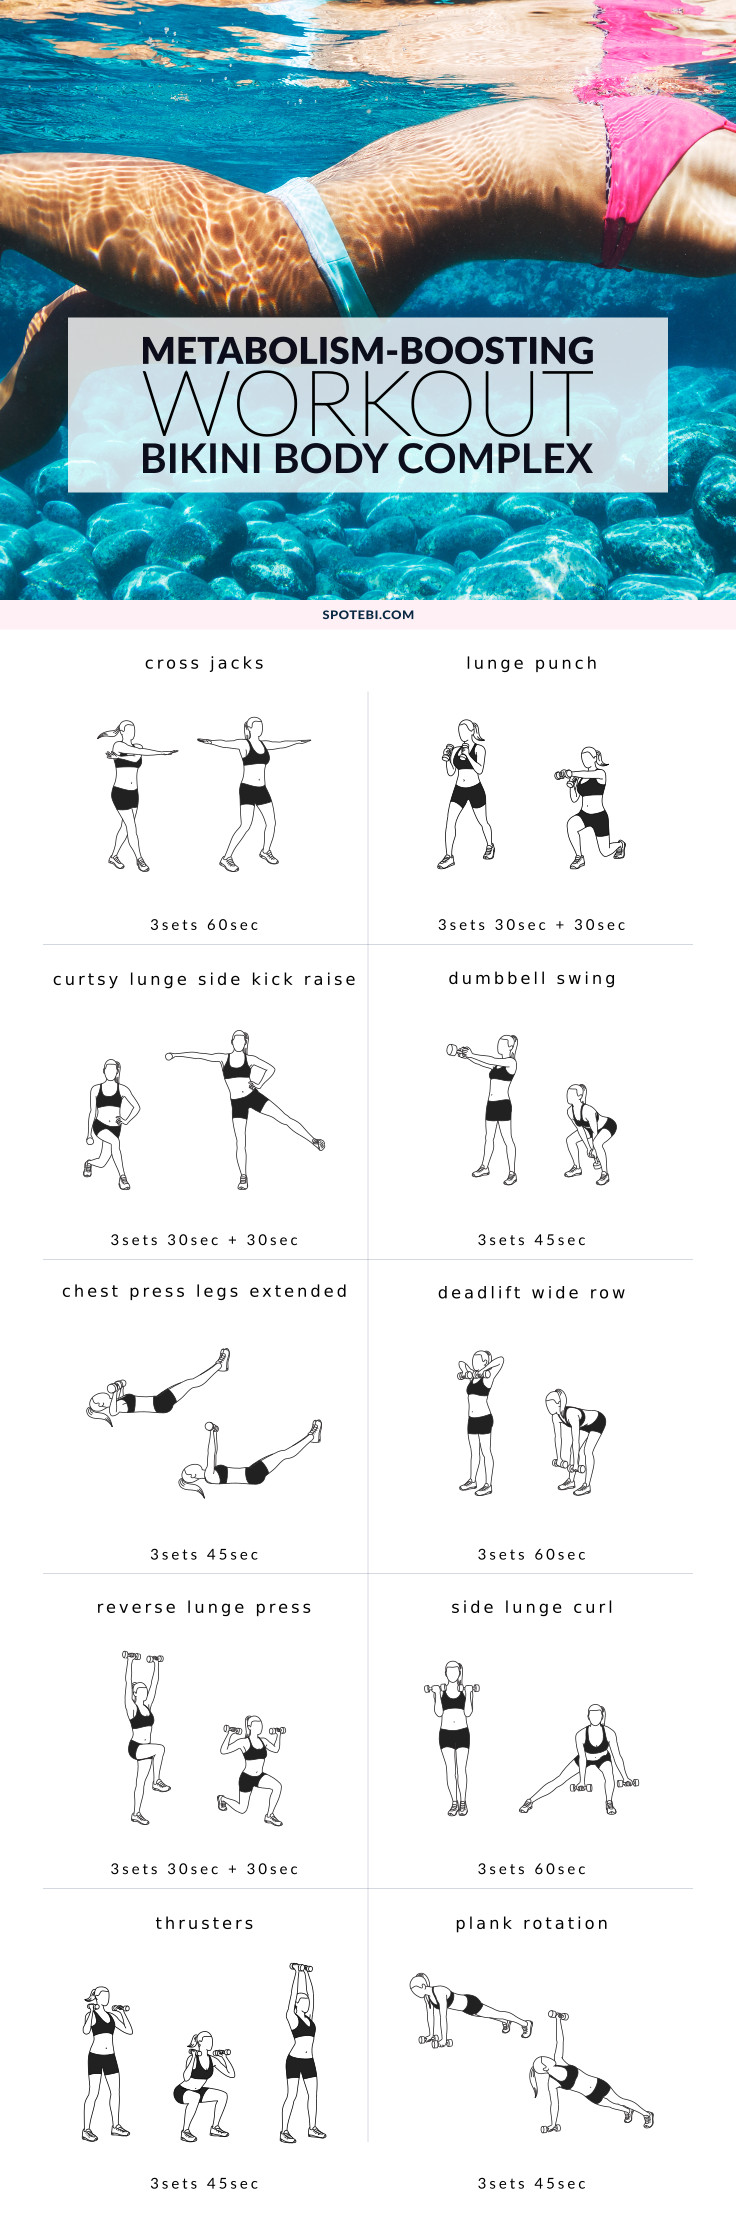 24 Full Body Weight Loss Workouts That Will Strip Belly Fat